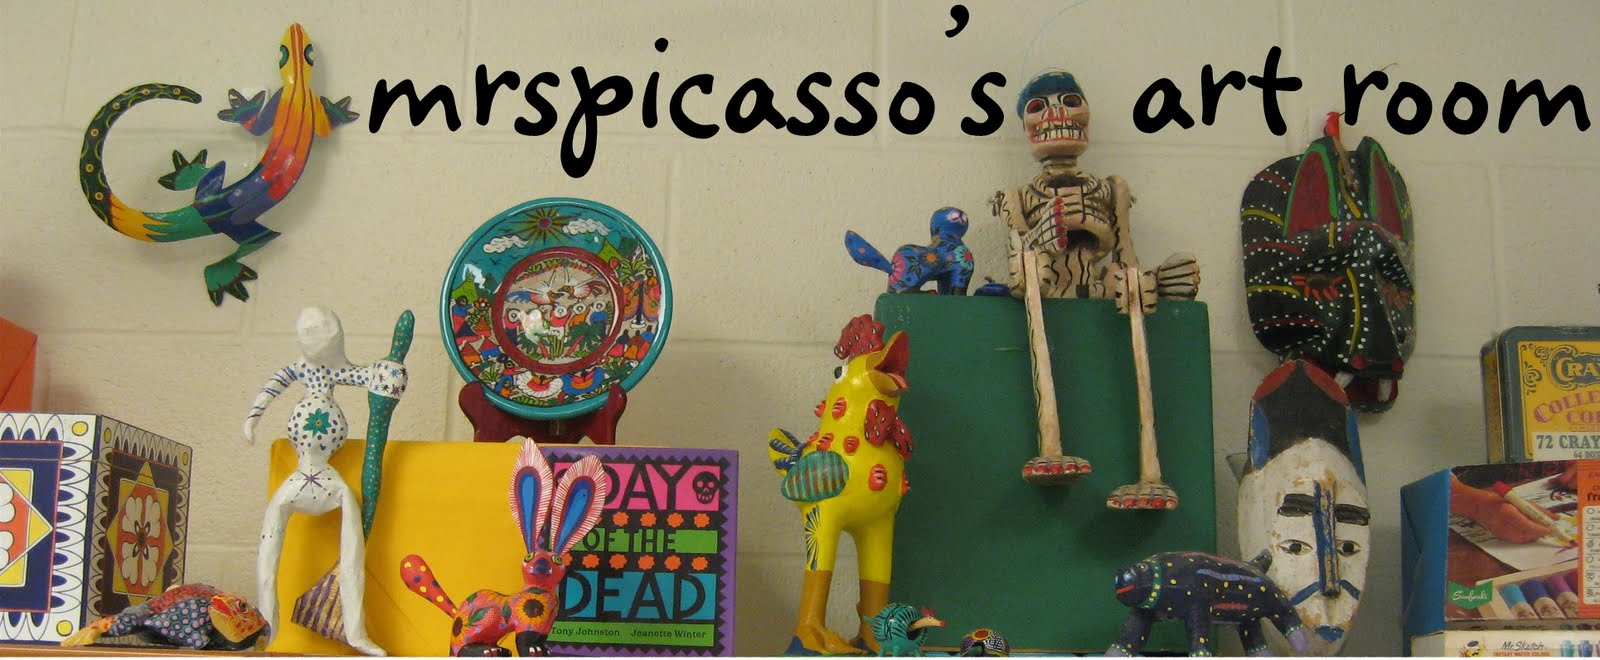 mrspicasso's art room